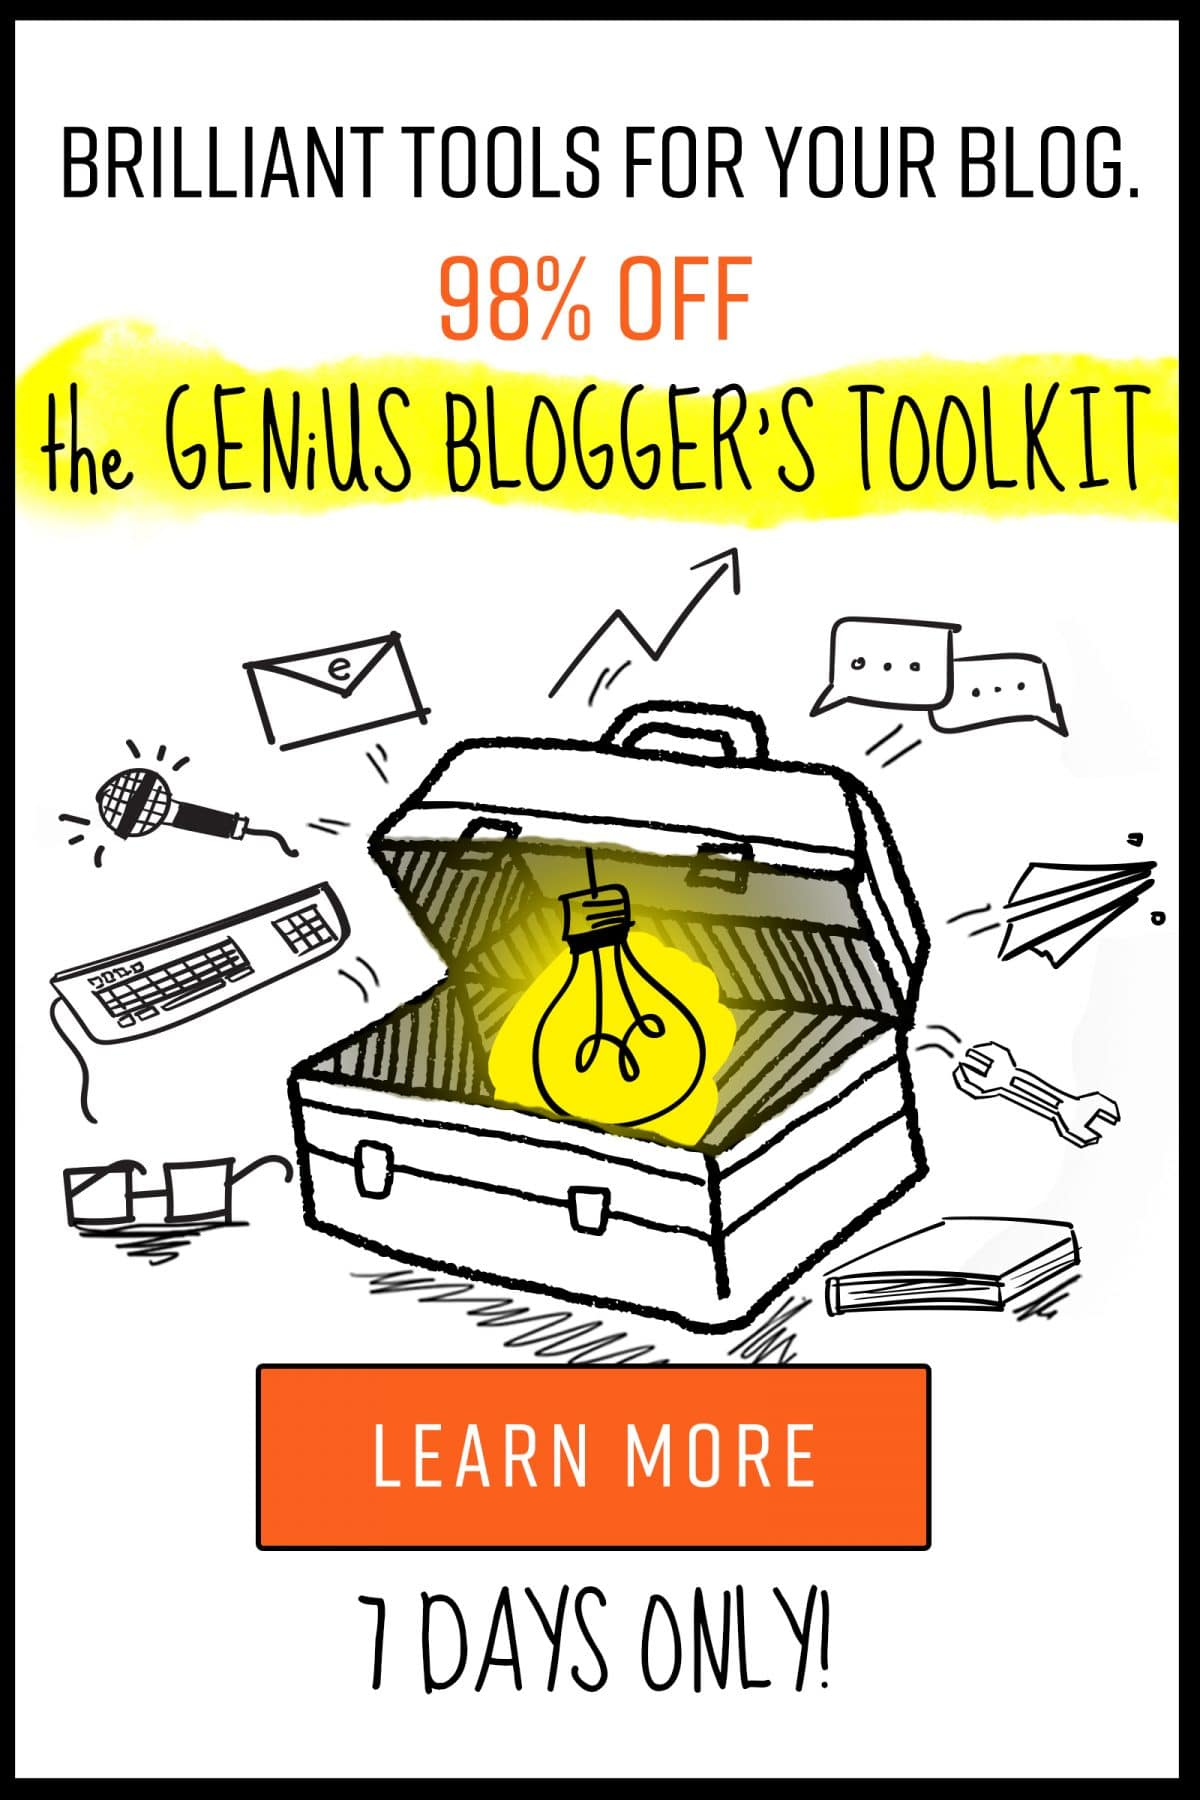 With blogging, it is so easy to become overwhelmed with how quick everything changes! How can you stay up to date? See why I love Genius Blogger's Toolkit!